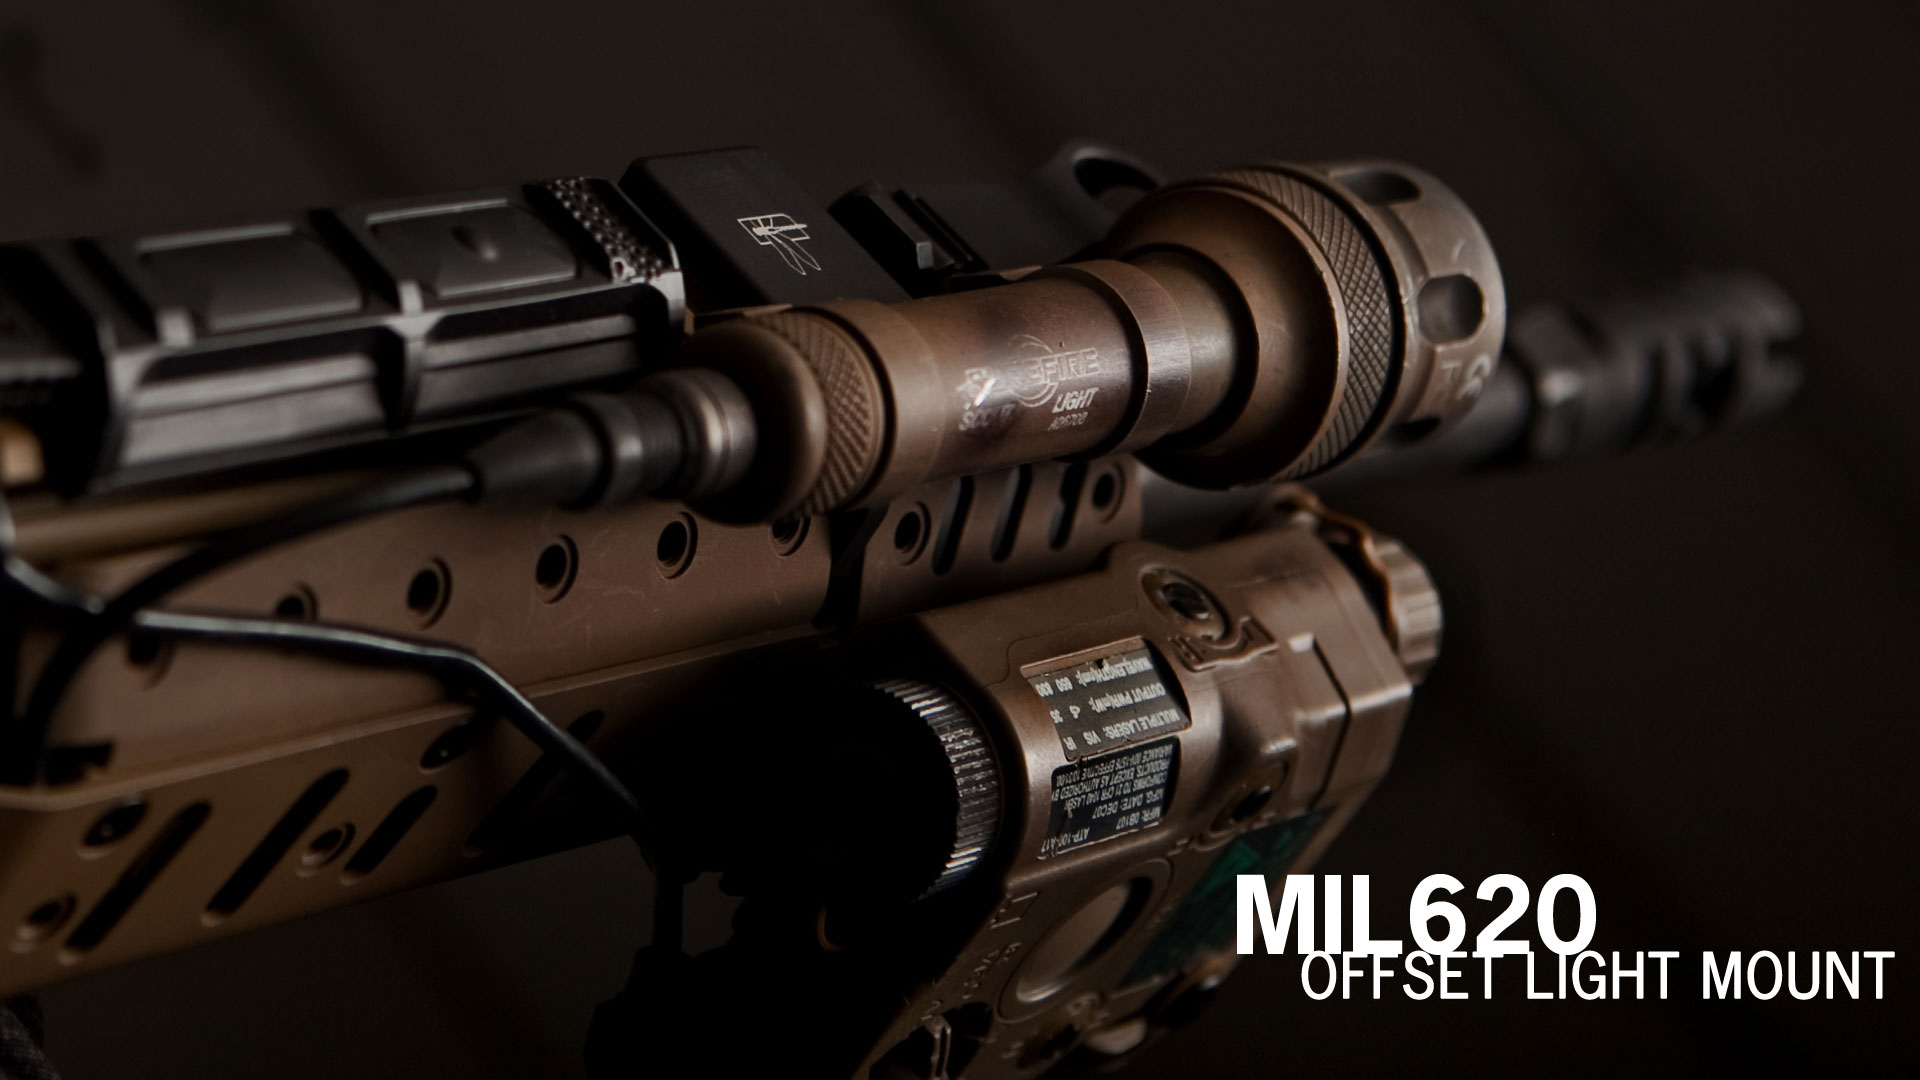 MIL 620 Offset Adaptive Light Mount